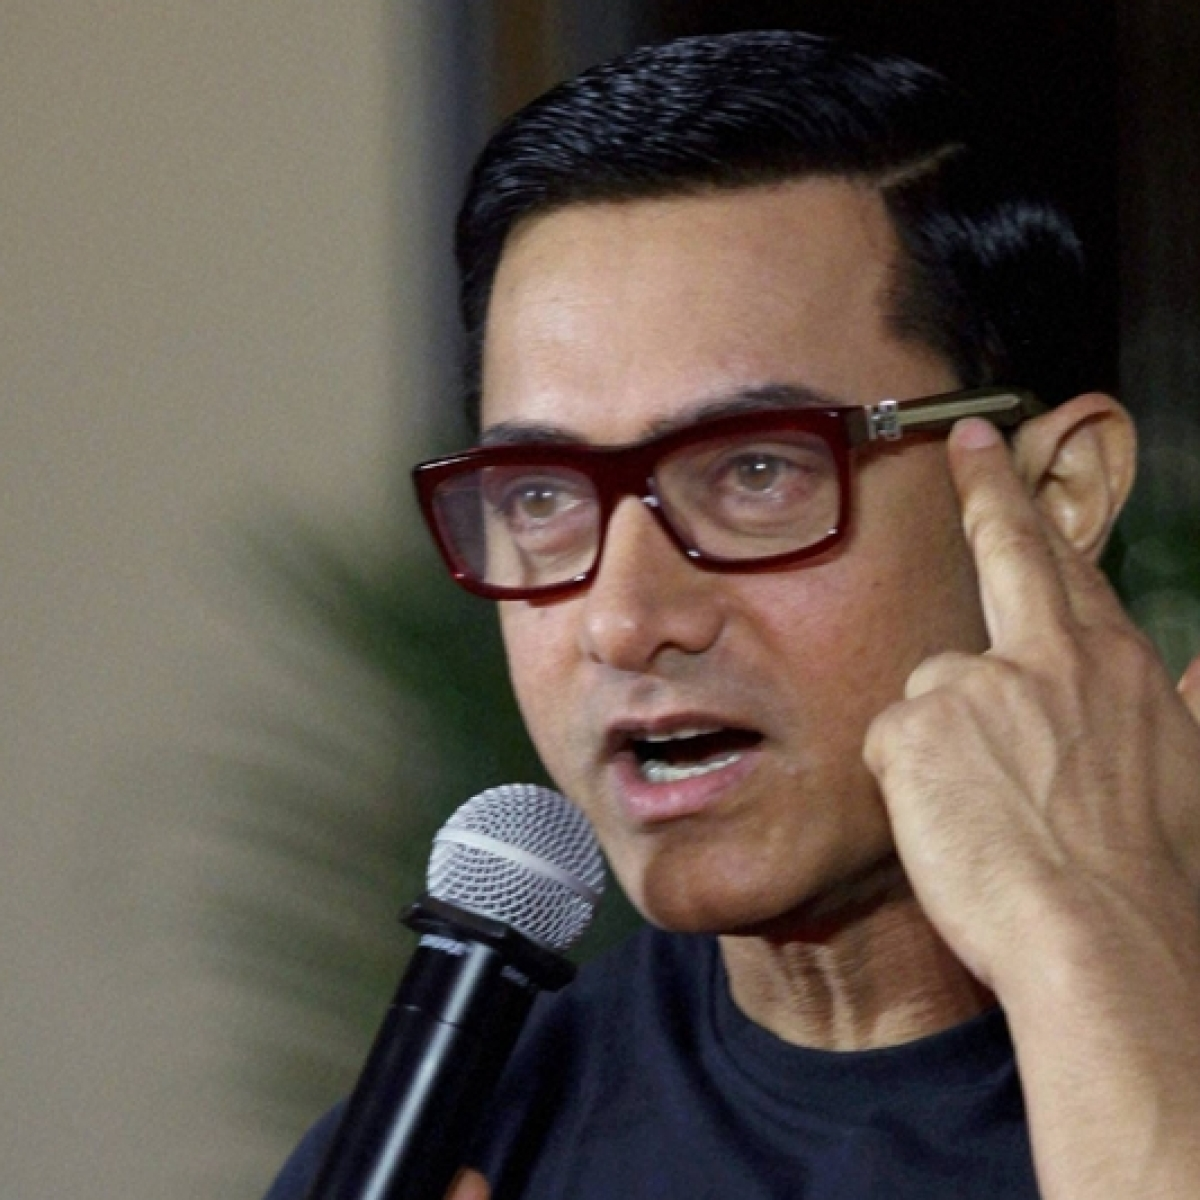 Why did Aamir Khan decide to turn off his phone completely?